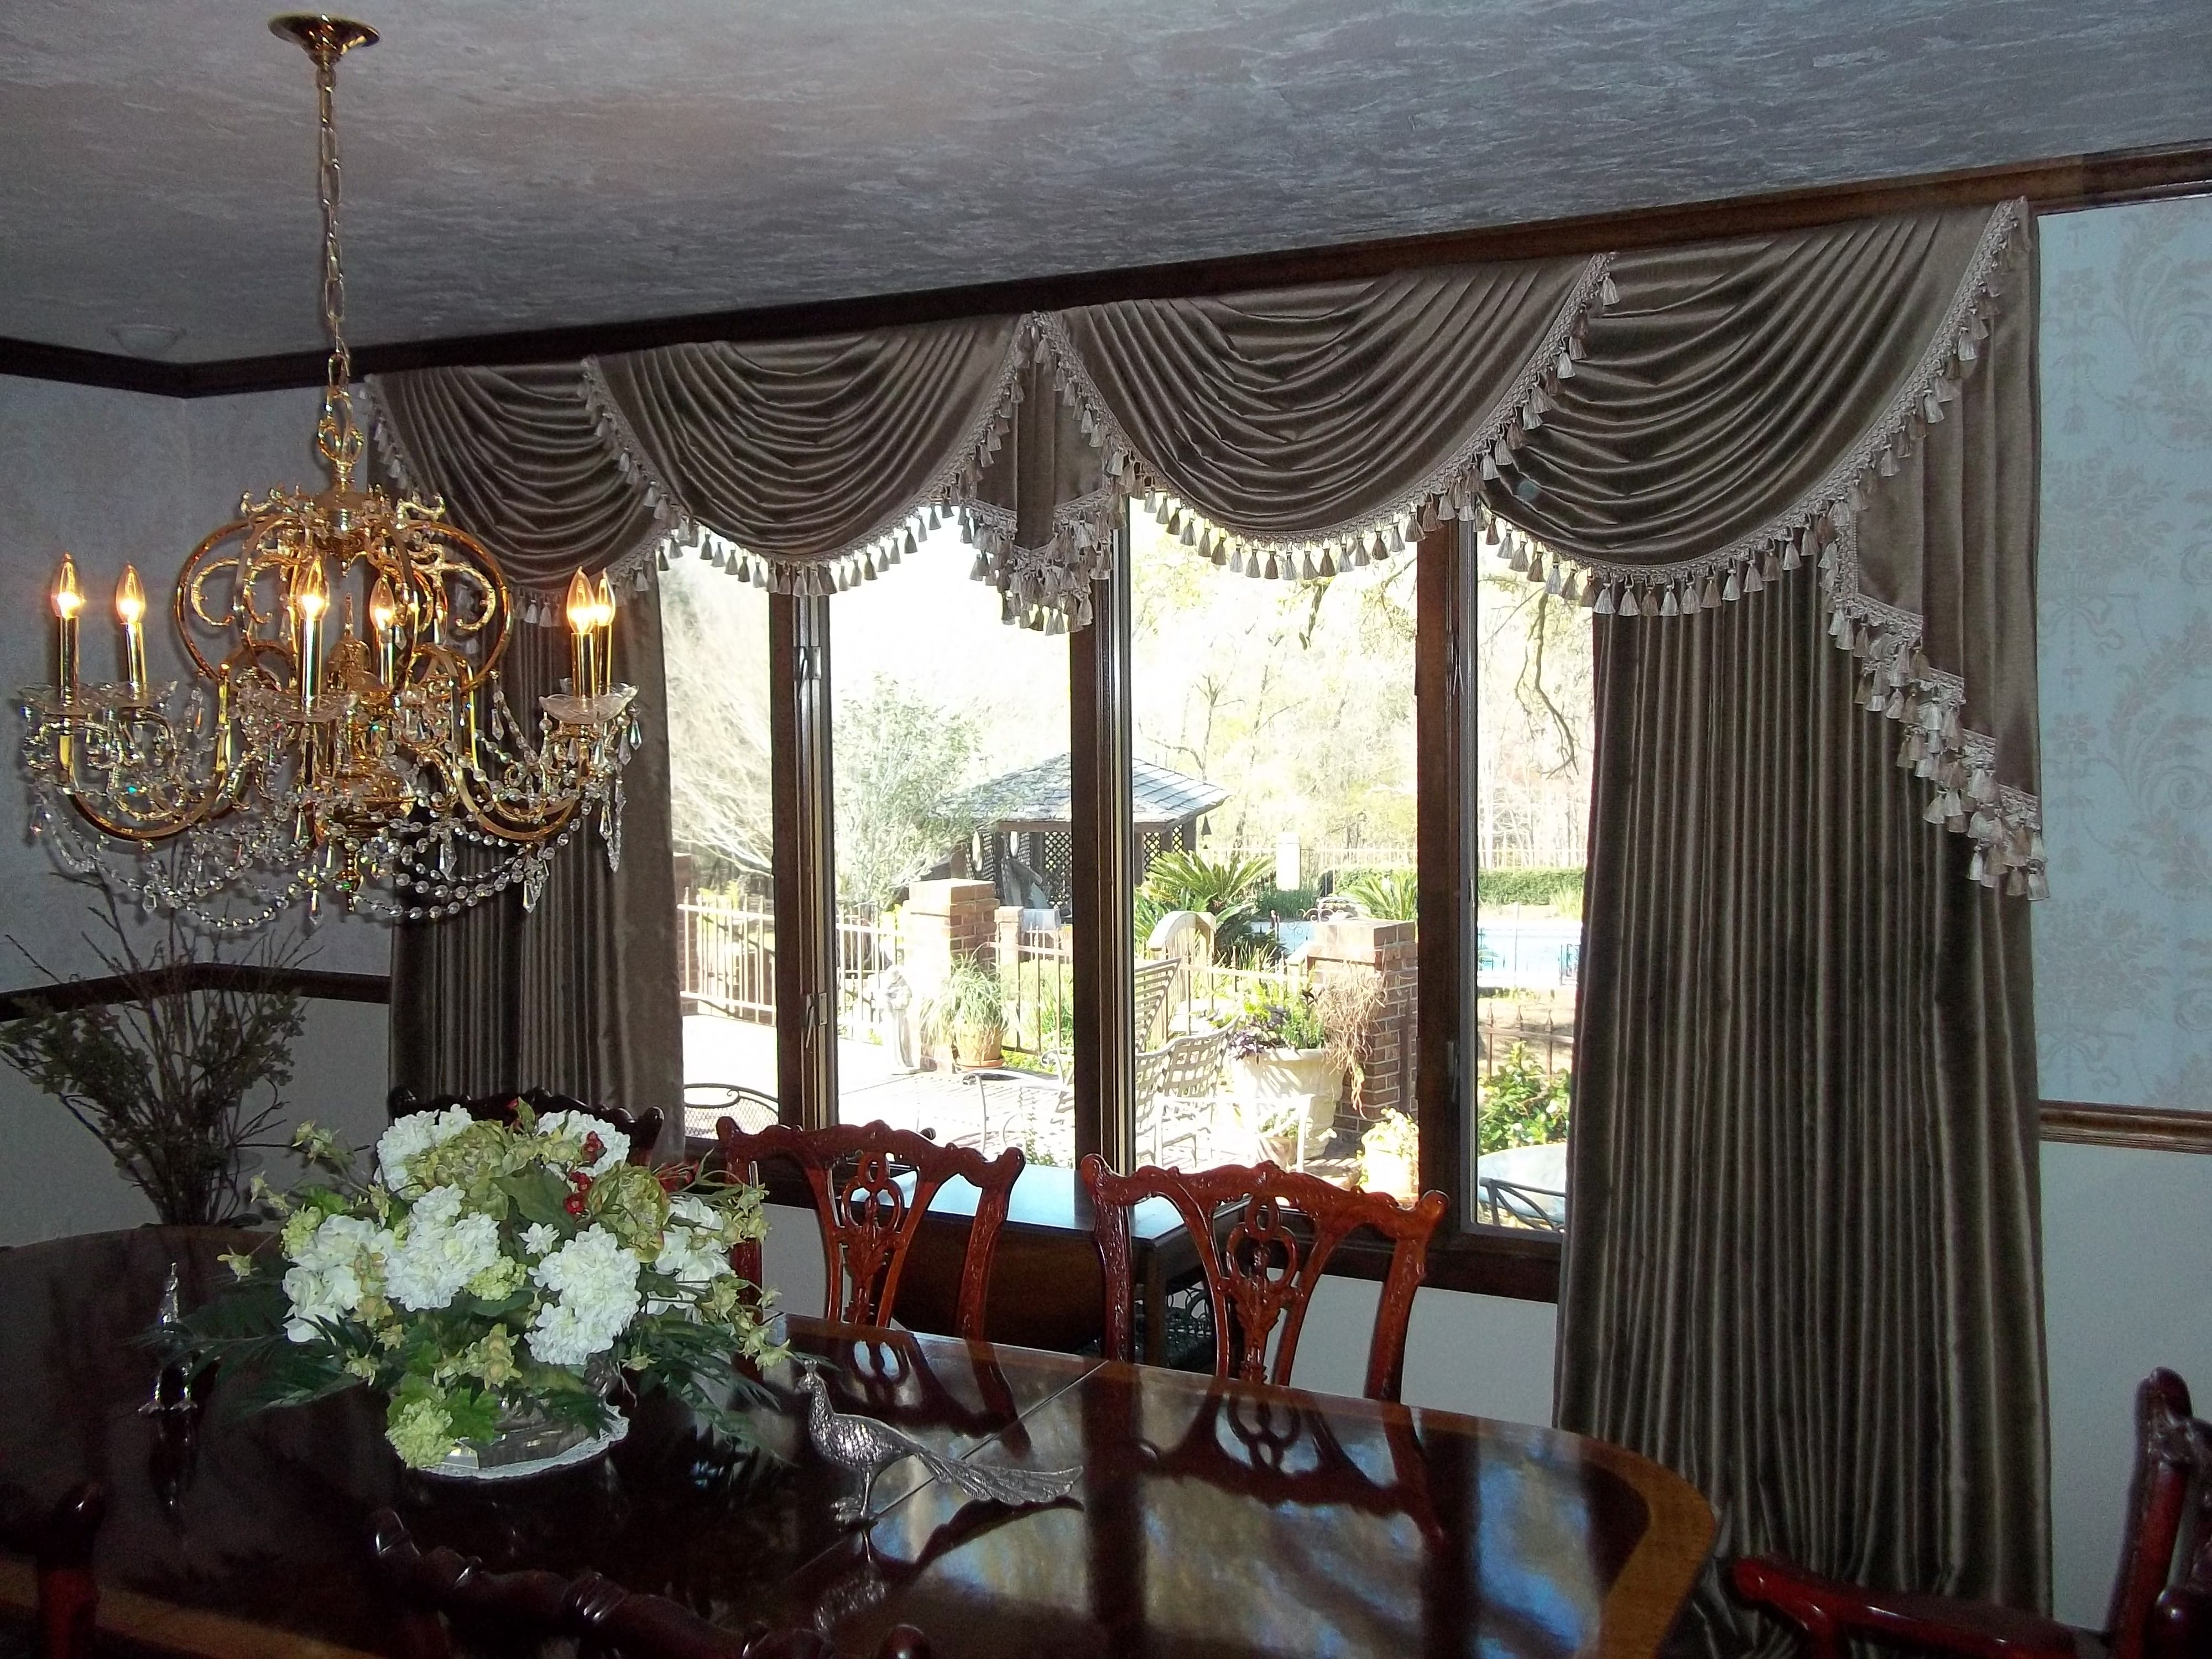 Window treatment ideas for arched windows  pretty window treatment  upholstery  pinterest  window bed crown